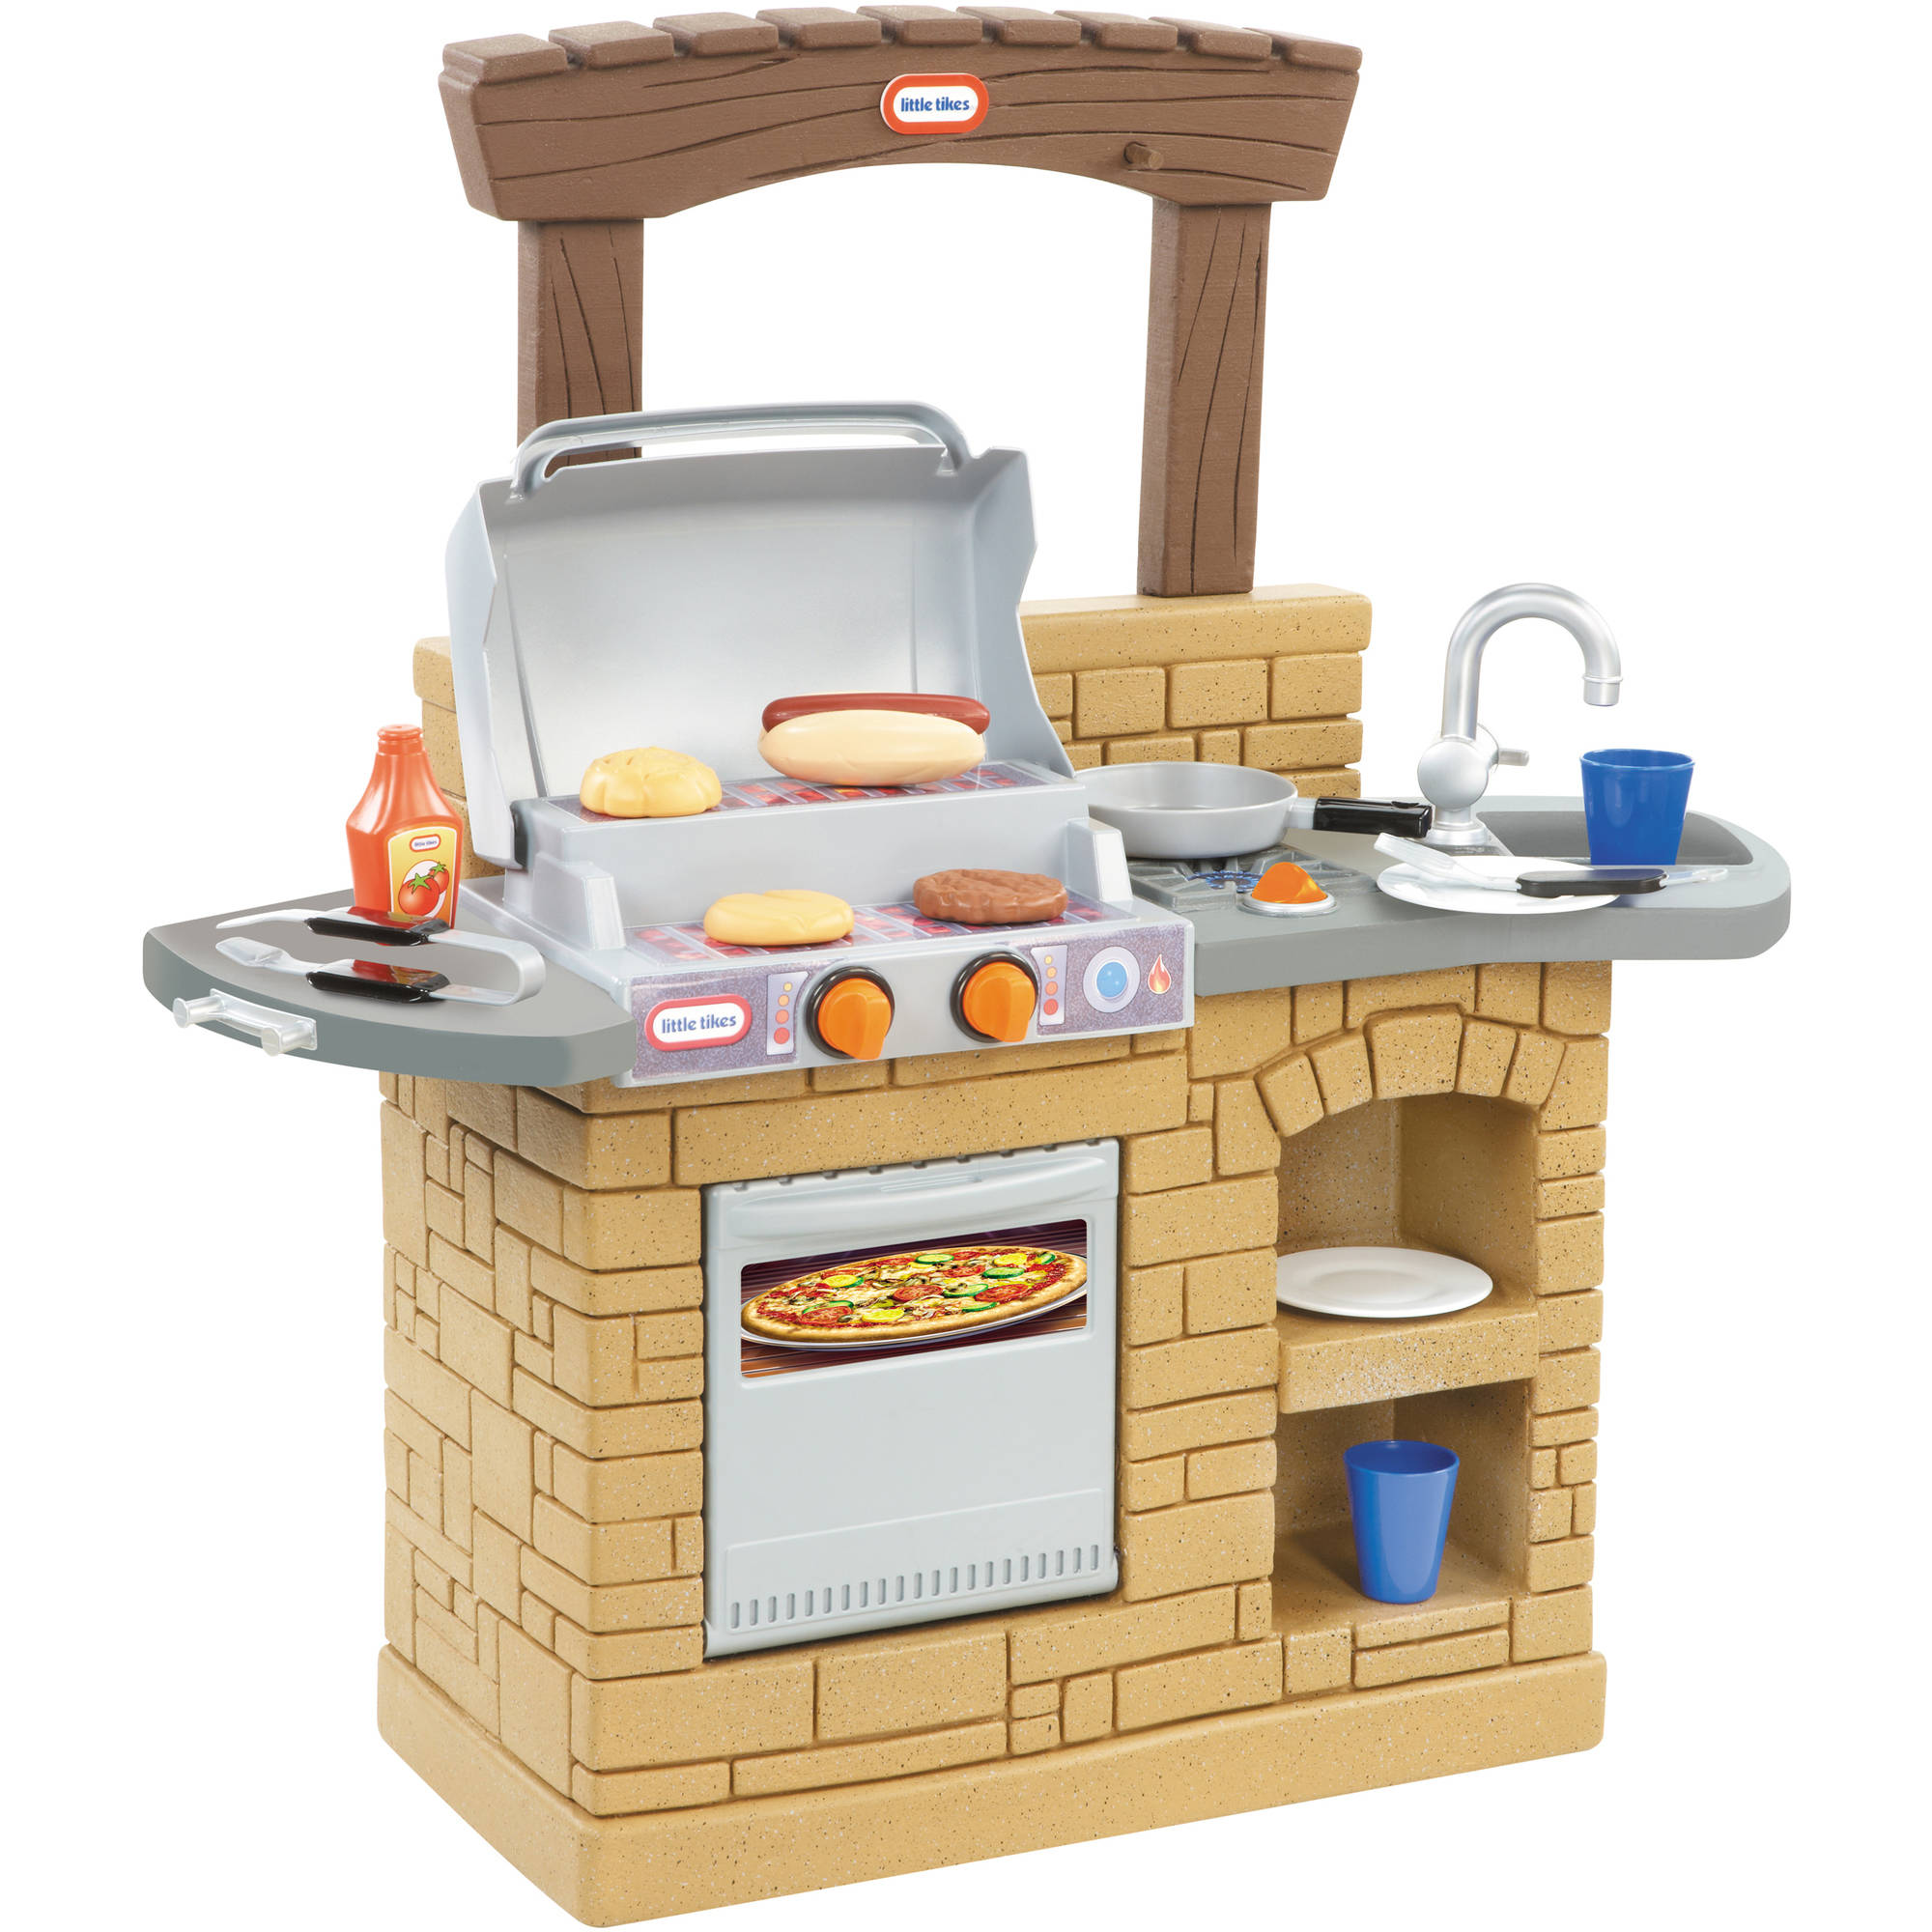 Little Tikes Cook 'n Play Outdoor BBQ Grill